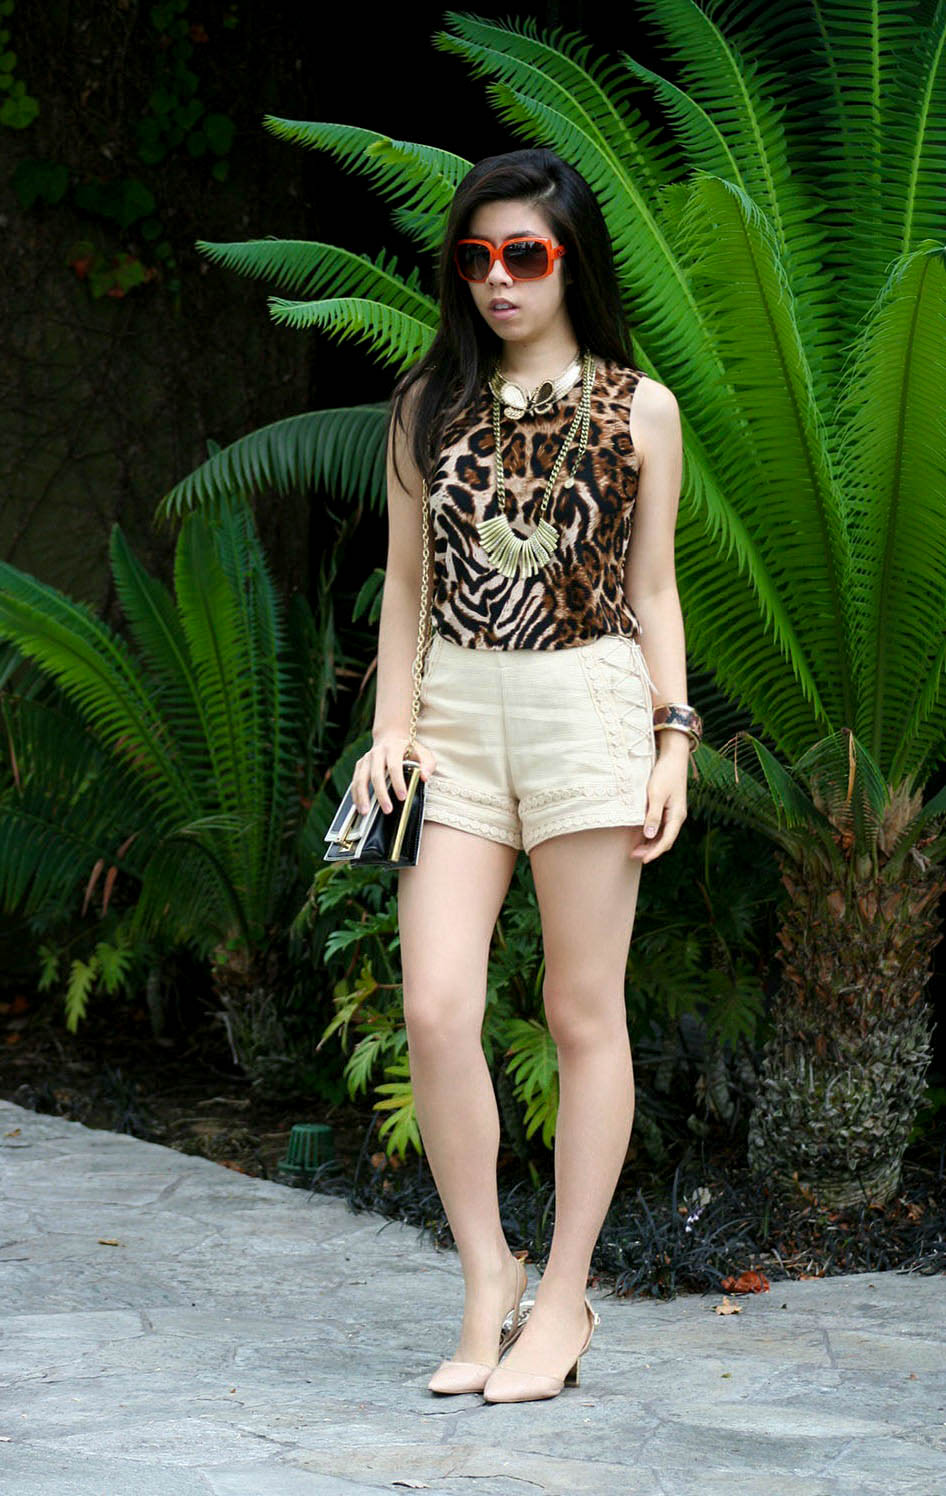 California Fashion Blog_How to look classy in leopard_Adrienne Nguyen_Invictus_Orange County Blogger_Pharmacist